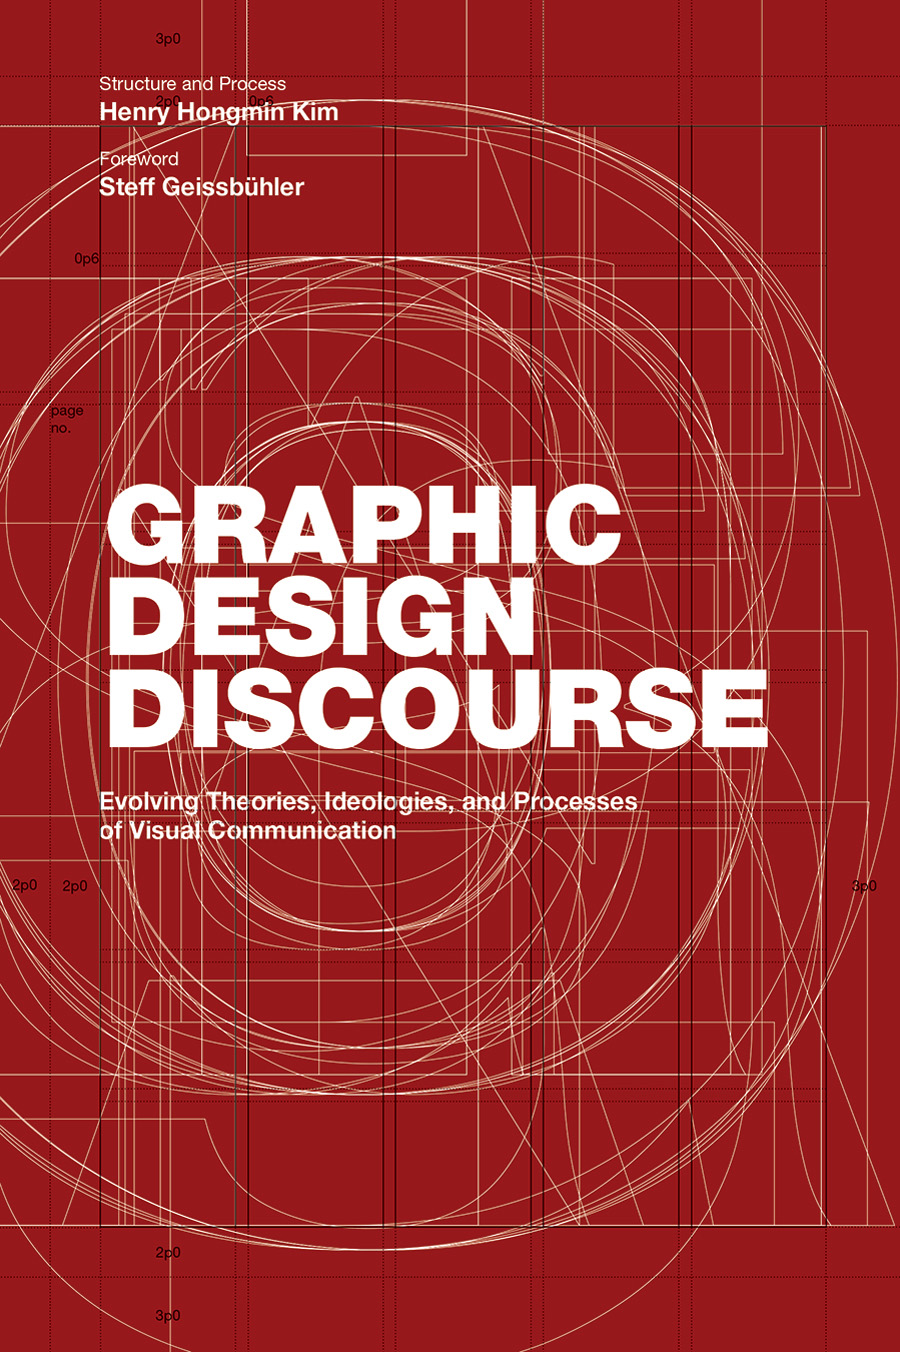 Graphic Design Discourse. Evolving Theories, Ideologies, and Processes of Visual Communication bridging theatre and visual art